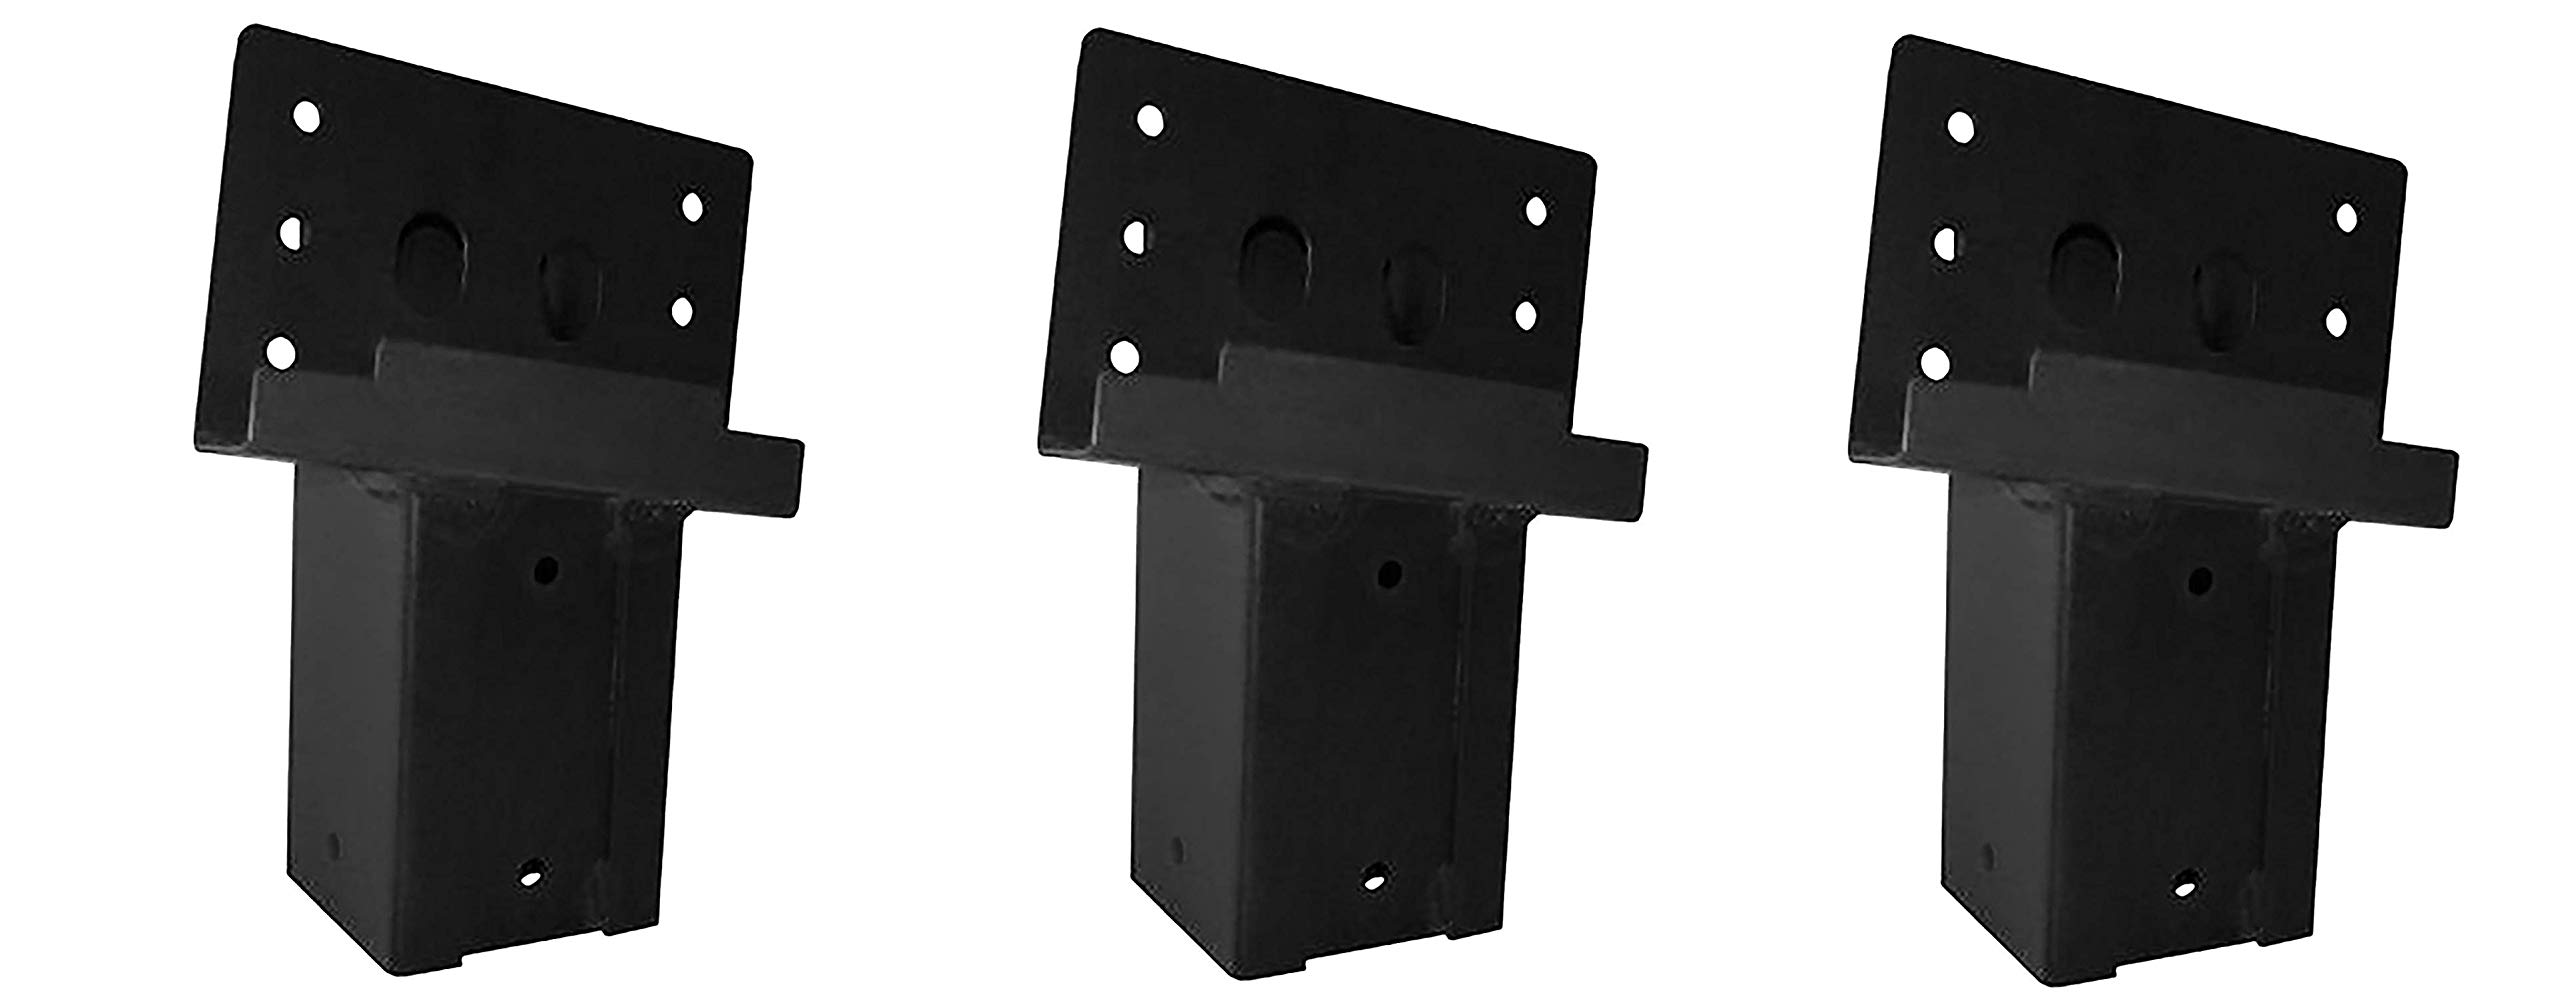 Elevators 4x4 Brackets for Deer Blinds, Playhouses, Swing Sets, Tree Houses. Made in The USA with Premium Construction Grade Steel. (Set of 4) (3 X Pack of 4)